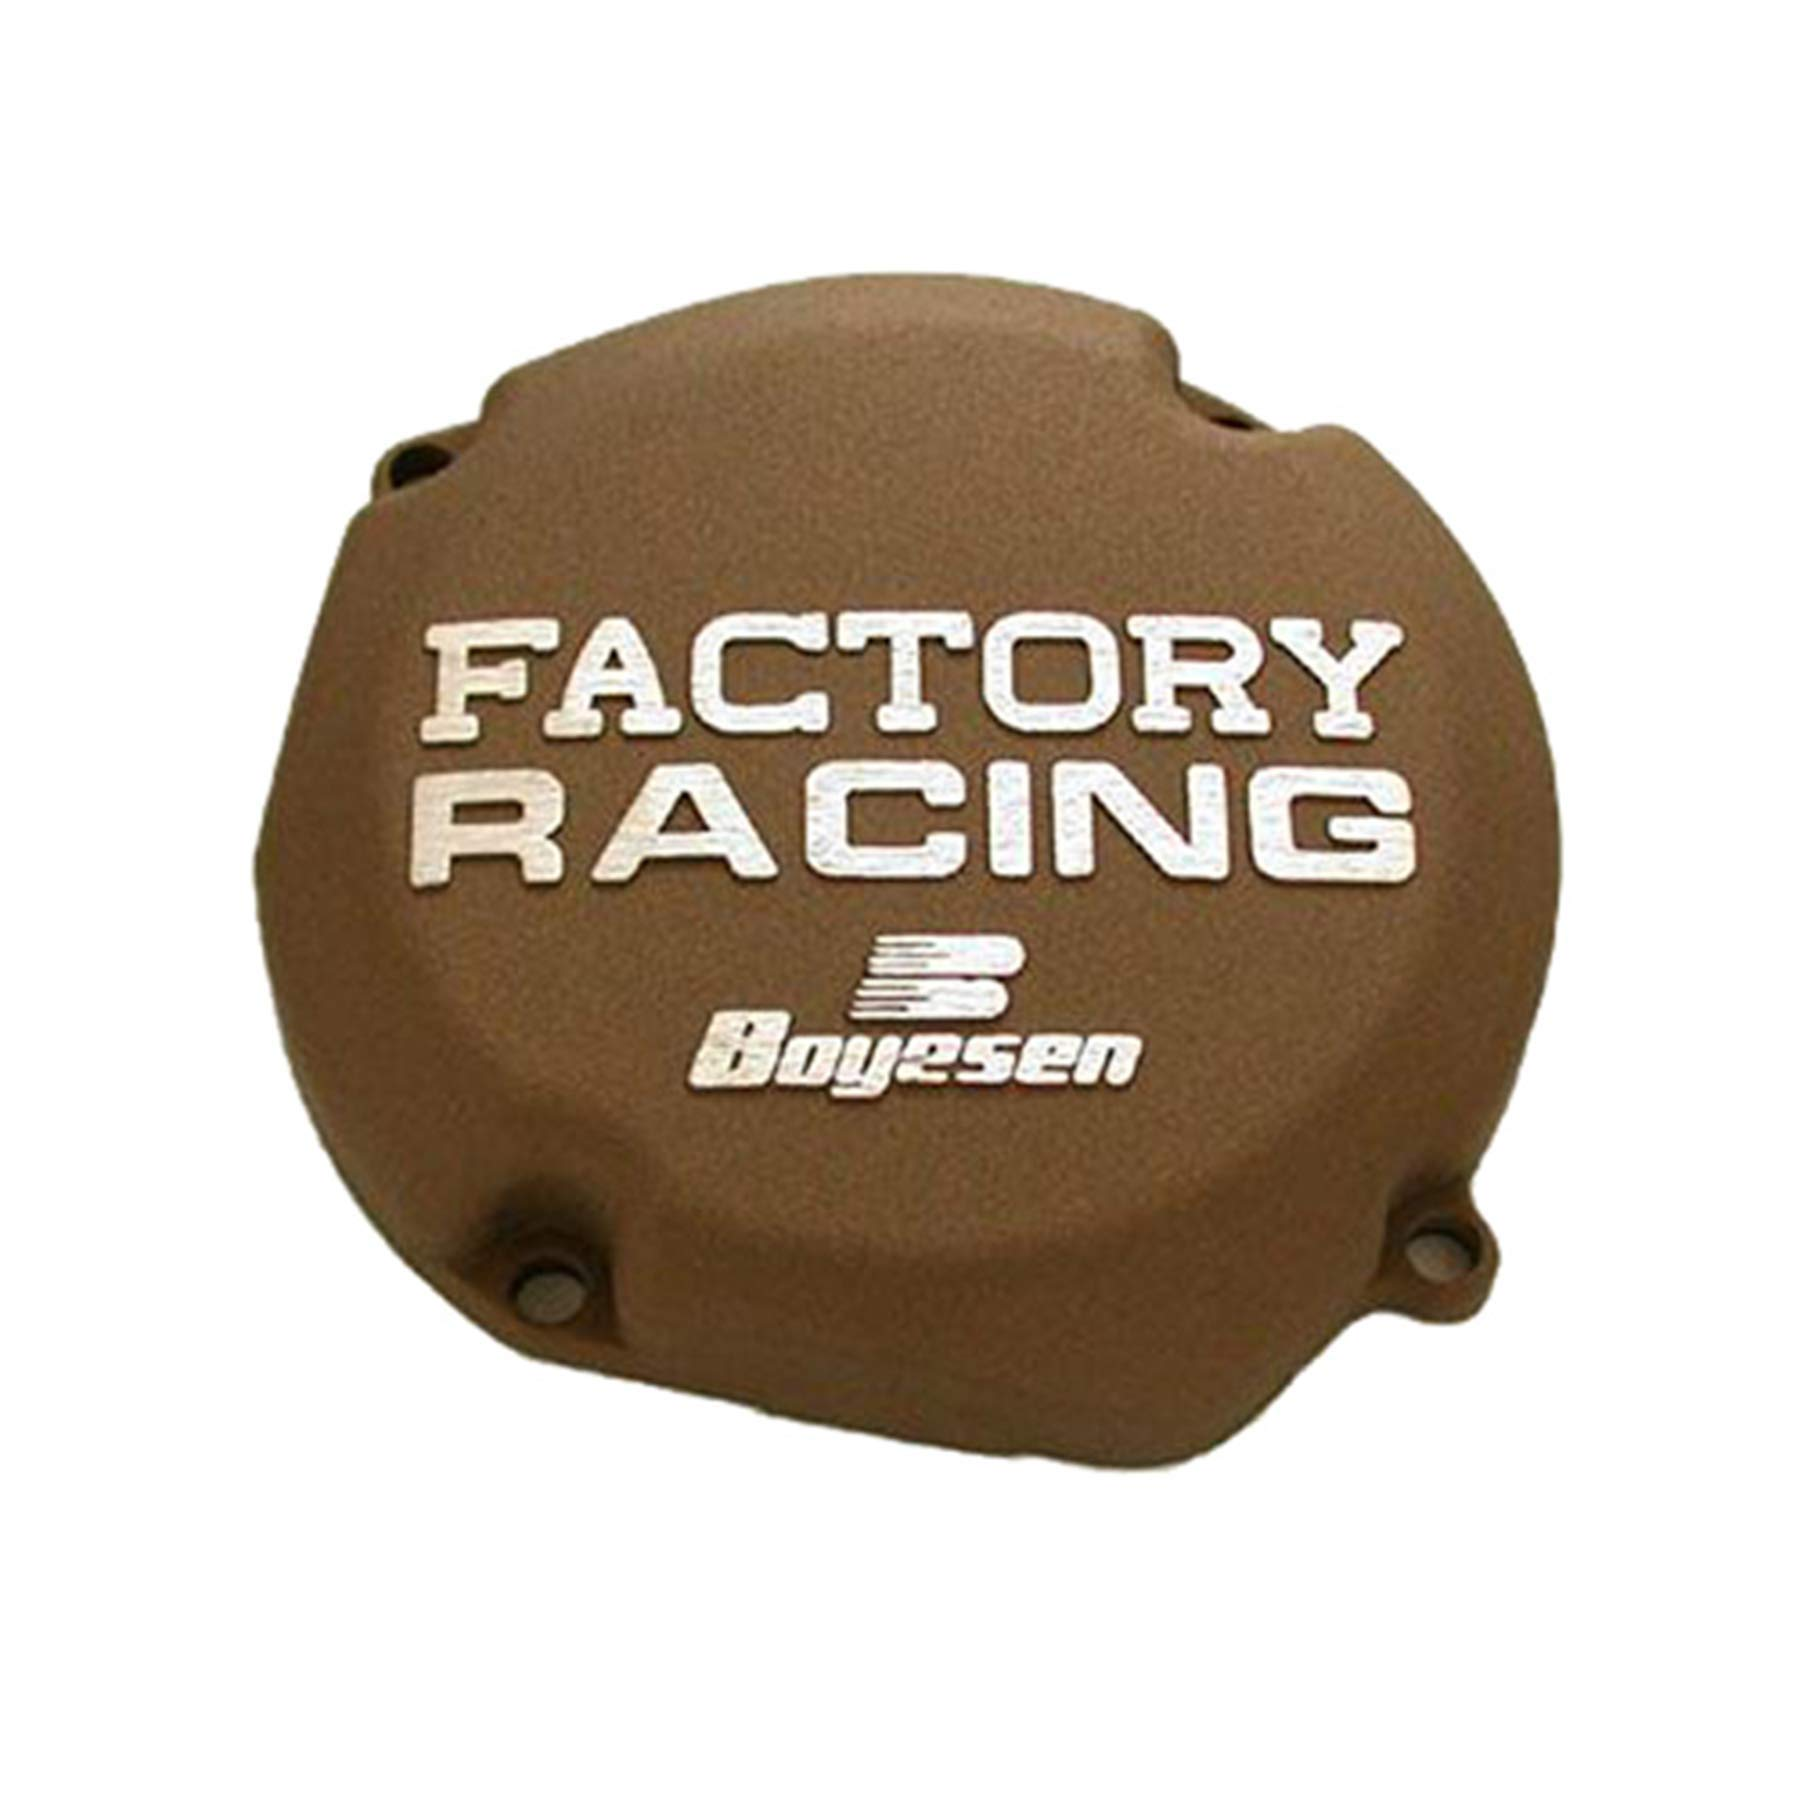 Factory Ignition Cover - Magnesium 2007 Suzuki RM250 Offroad Motorcycle